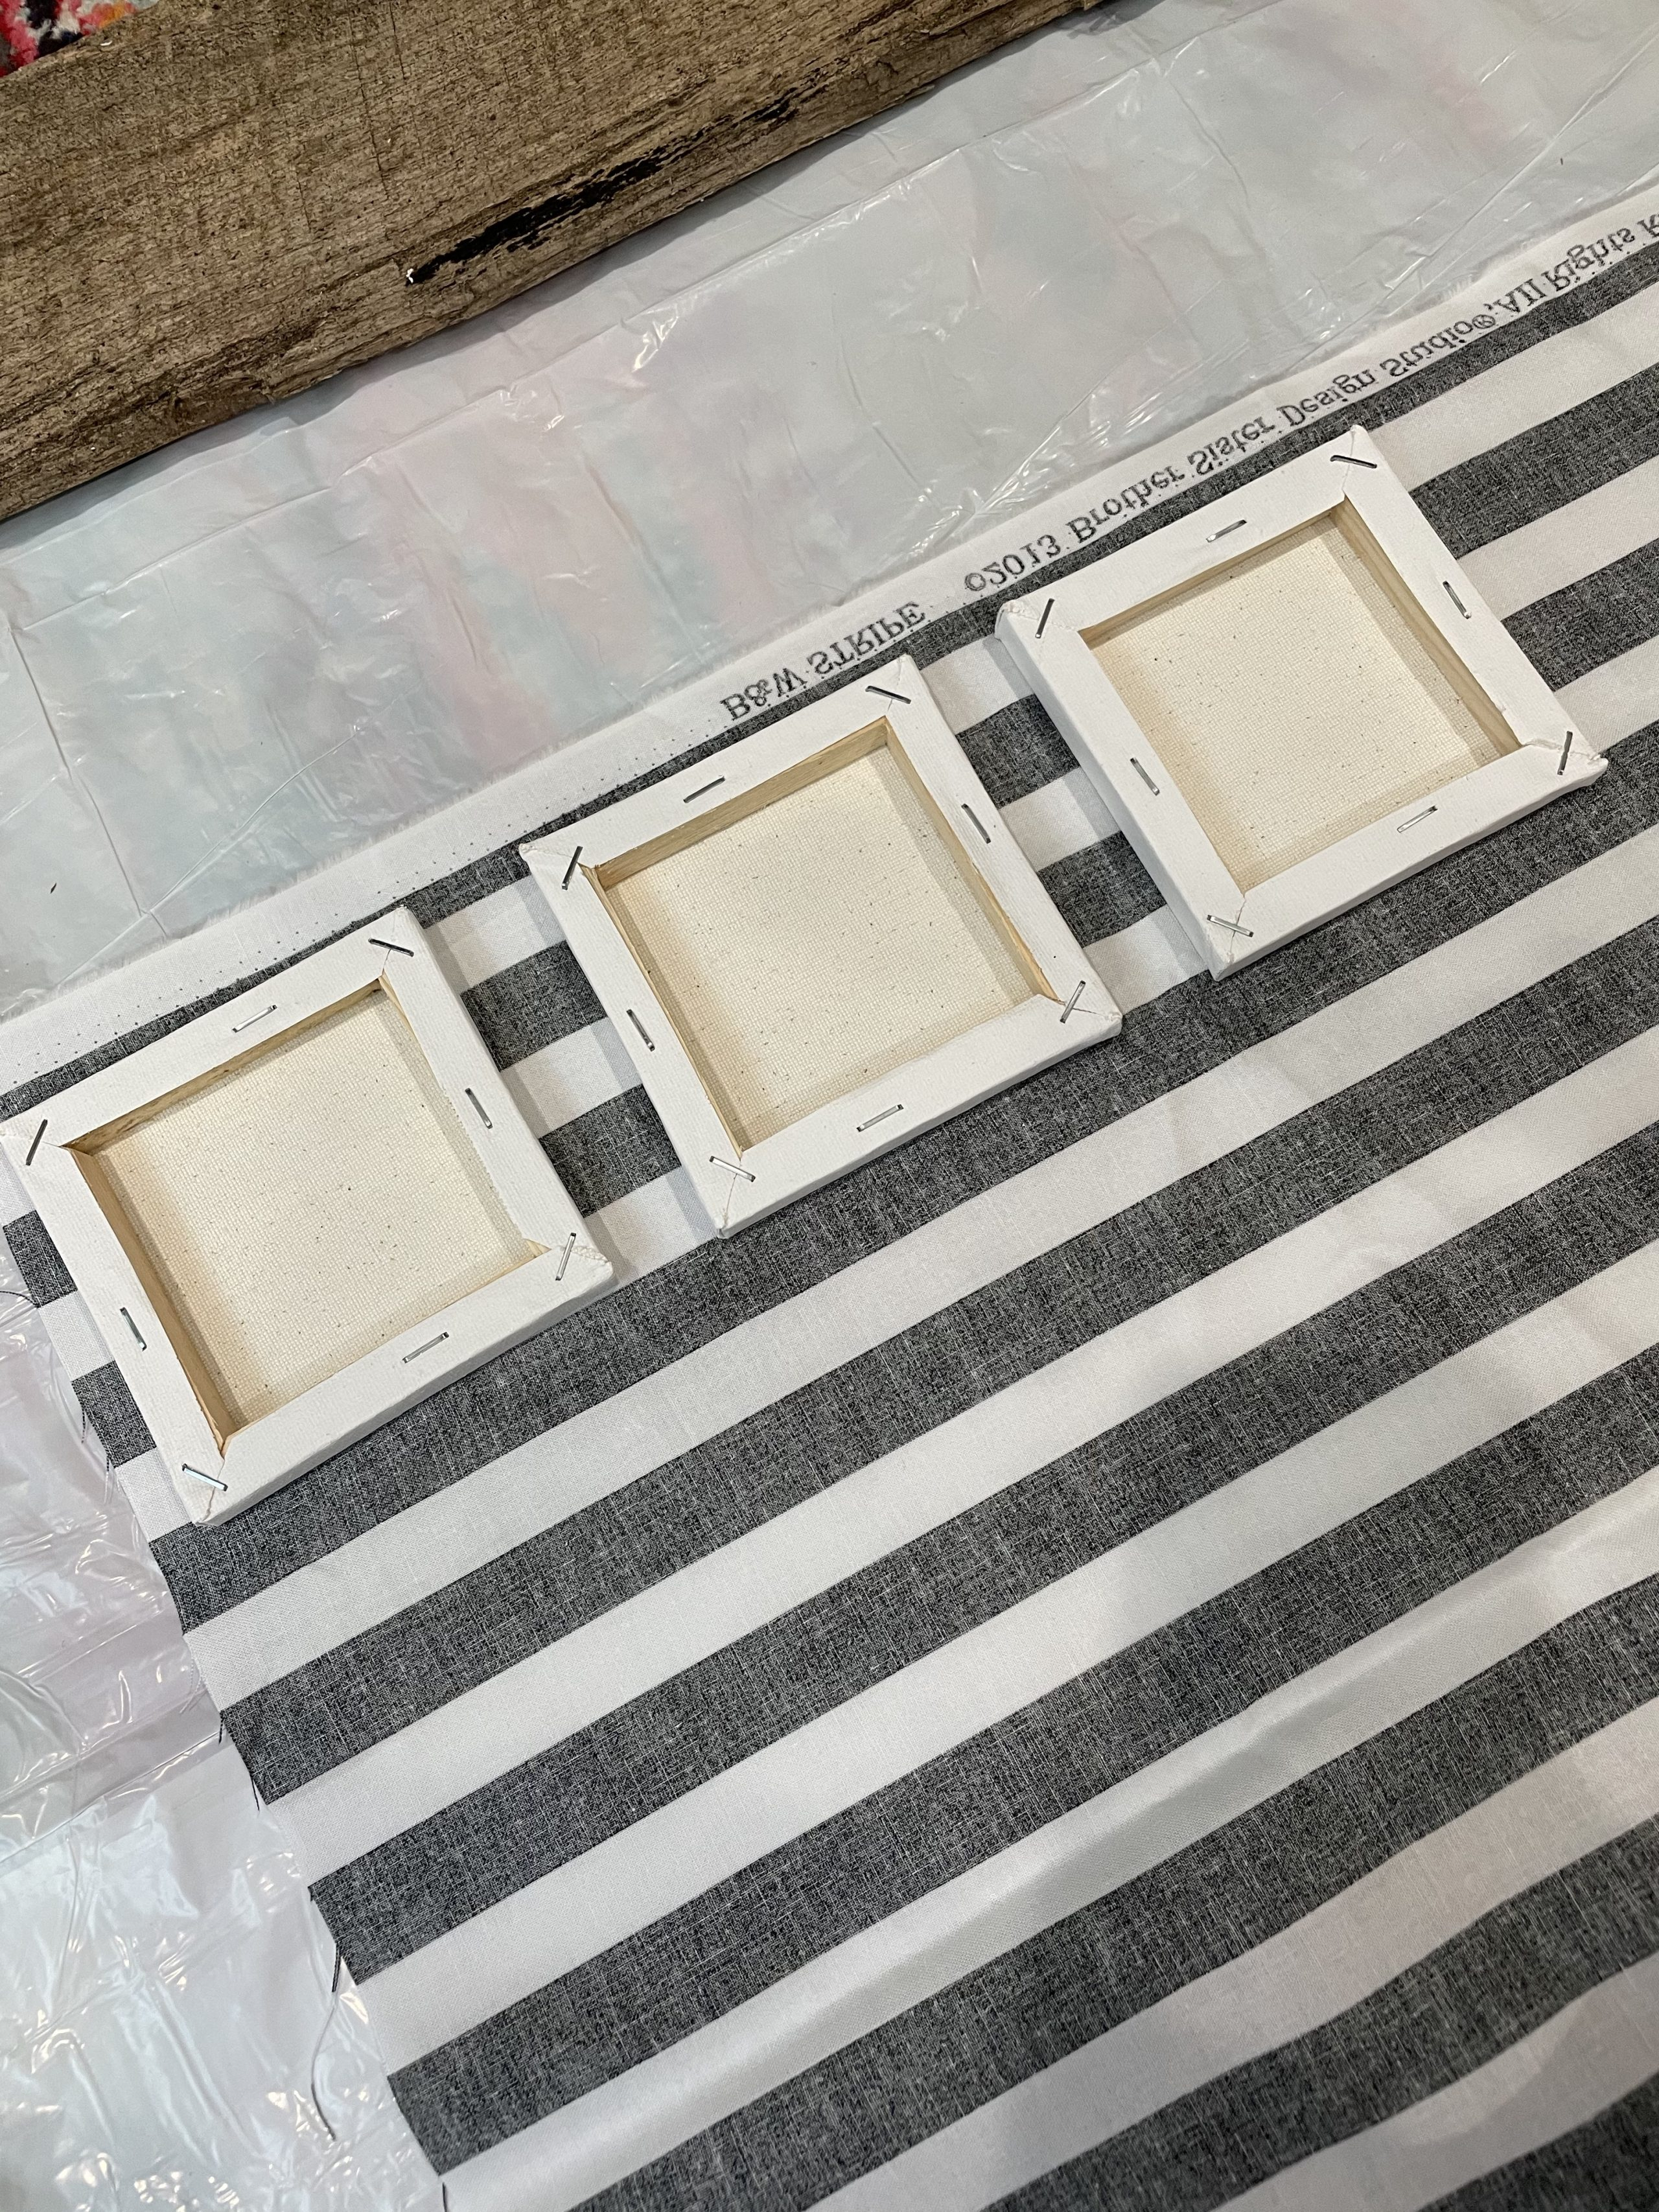 covering the canvases with striped fabric